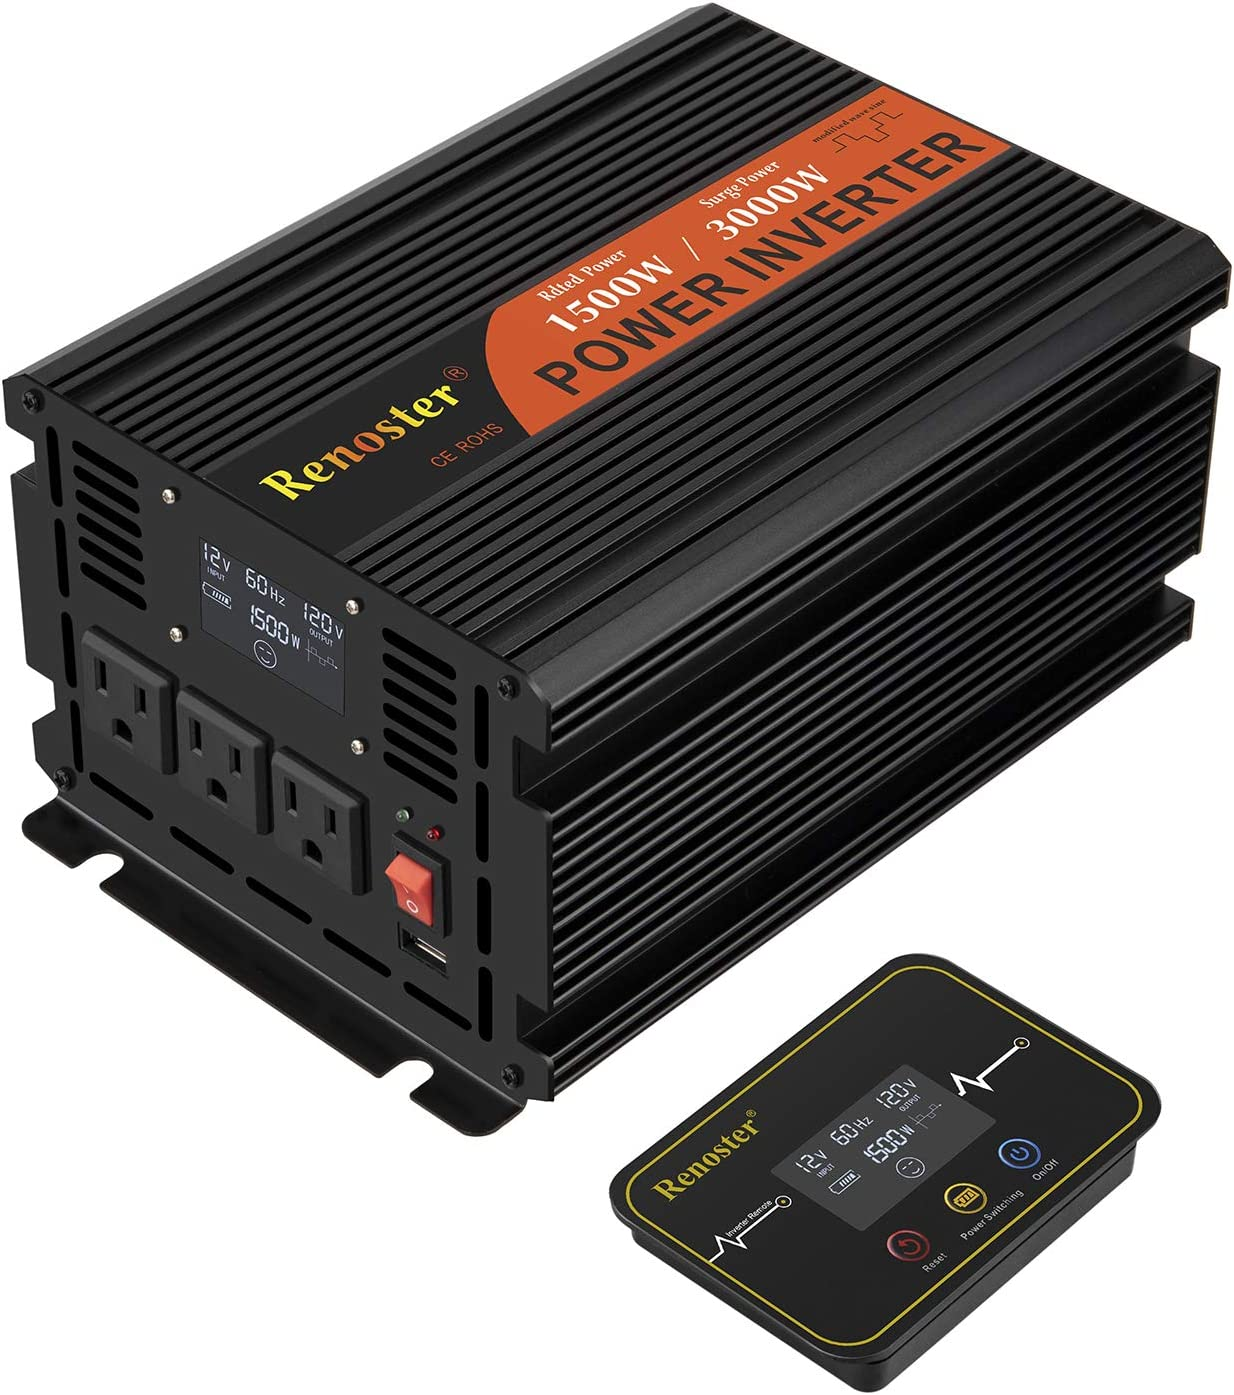 Renoster 1500W Power Inverter DC 12V to AC 120V with LCD Display Wireless Rechargeable Remote Control, Modified Sine Wave Car Power Converter with 3 AC Outlets 2.1A USB for RV Outdoor Camping